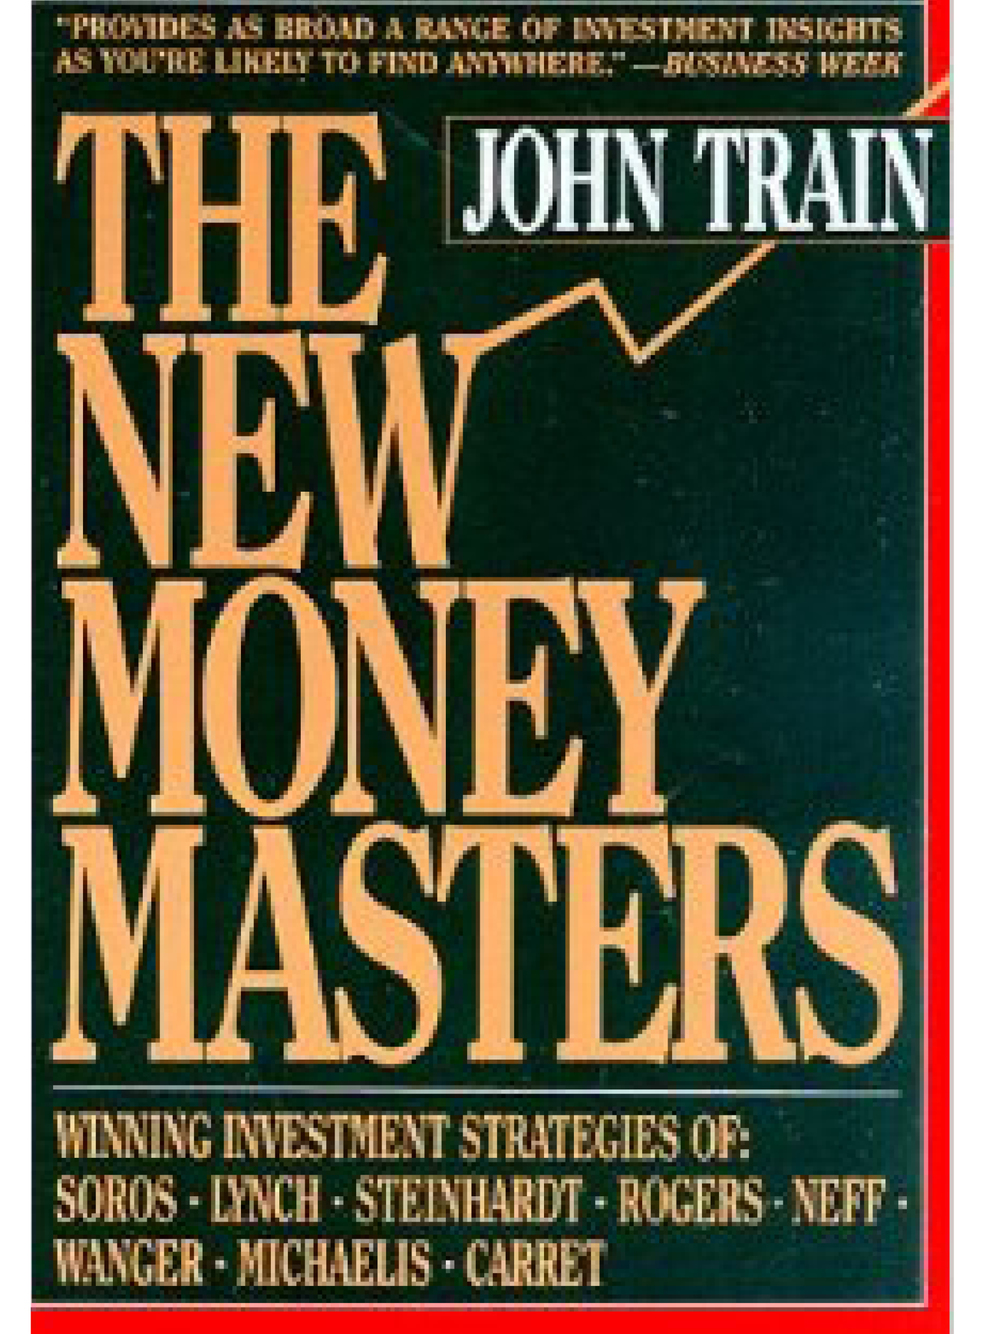 The New Money Masters. John Train 1989